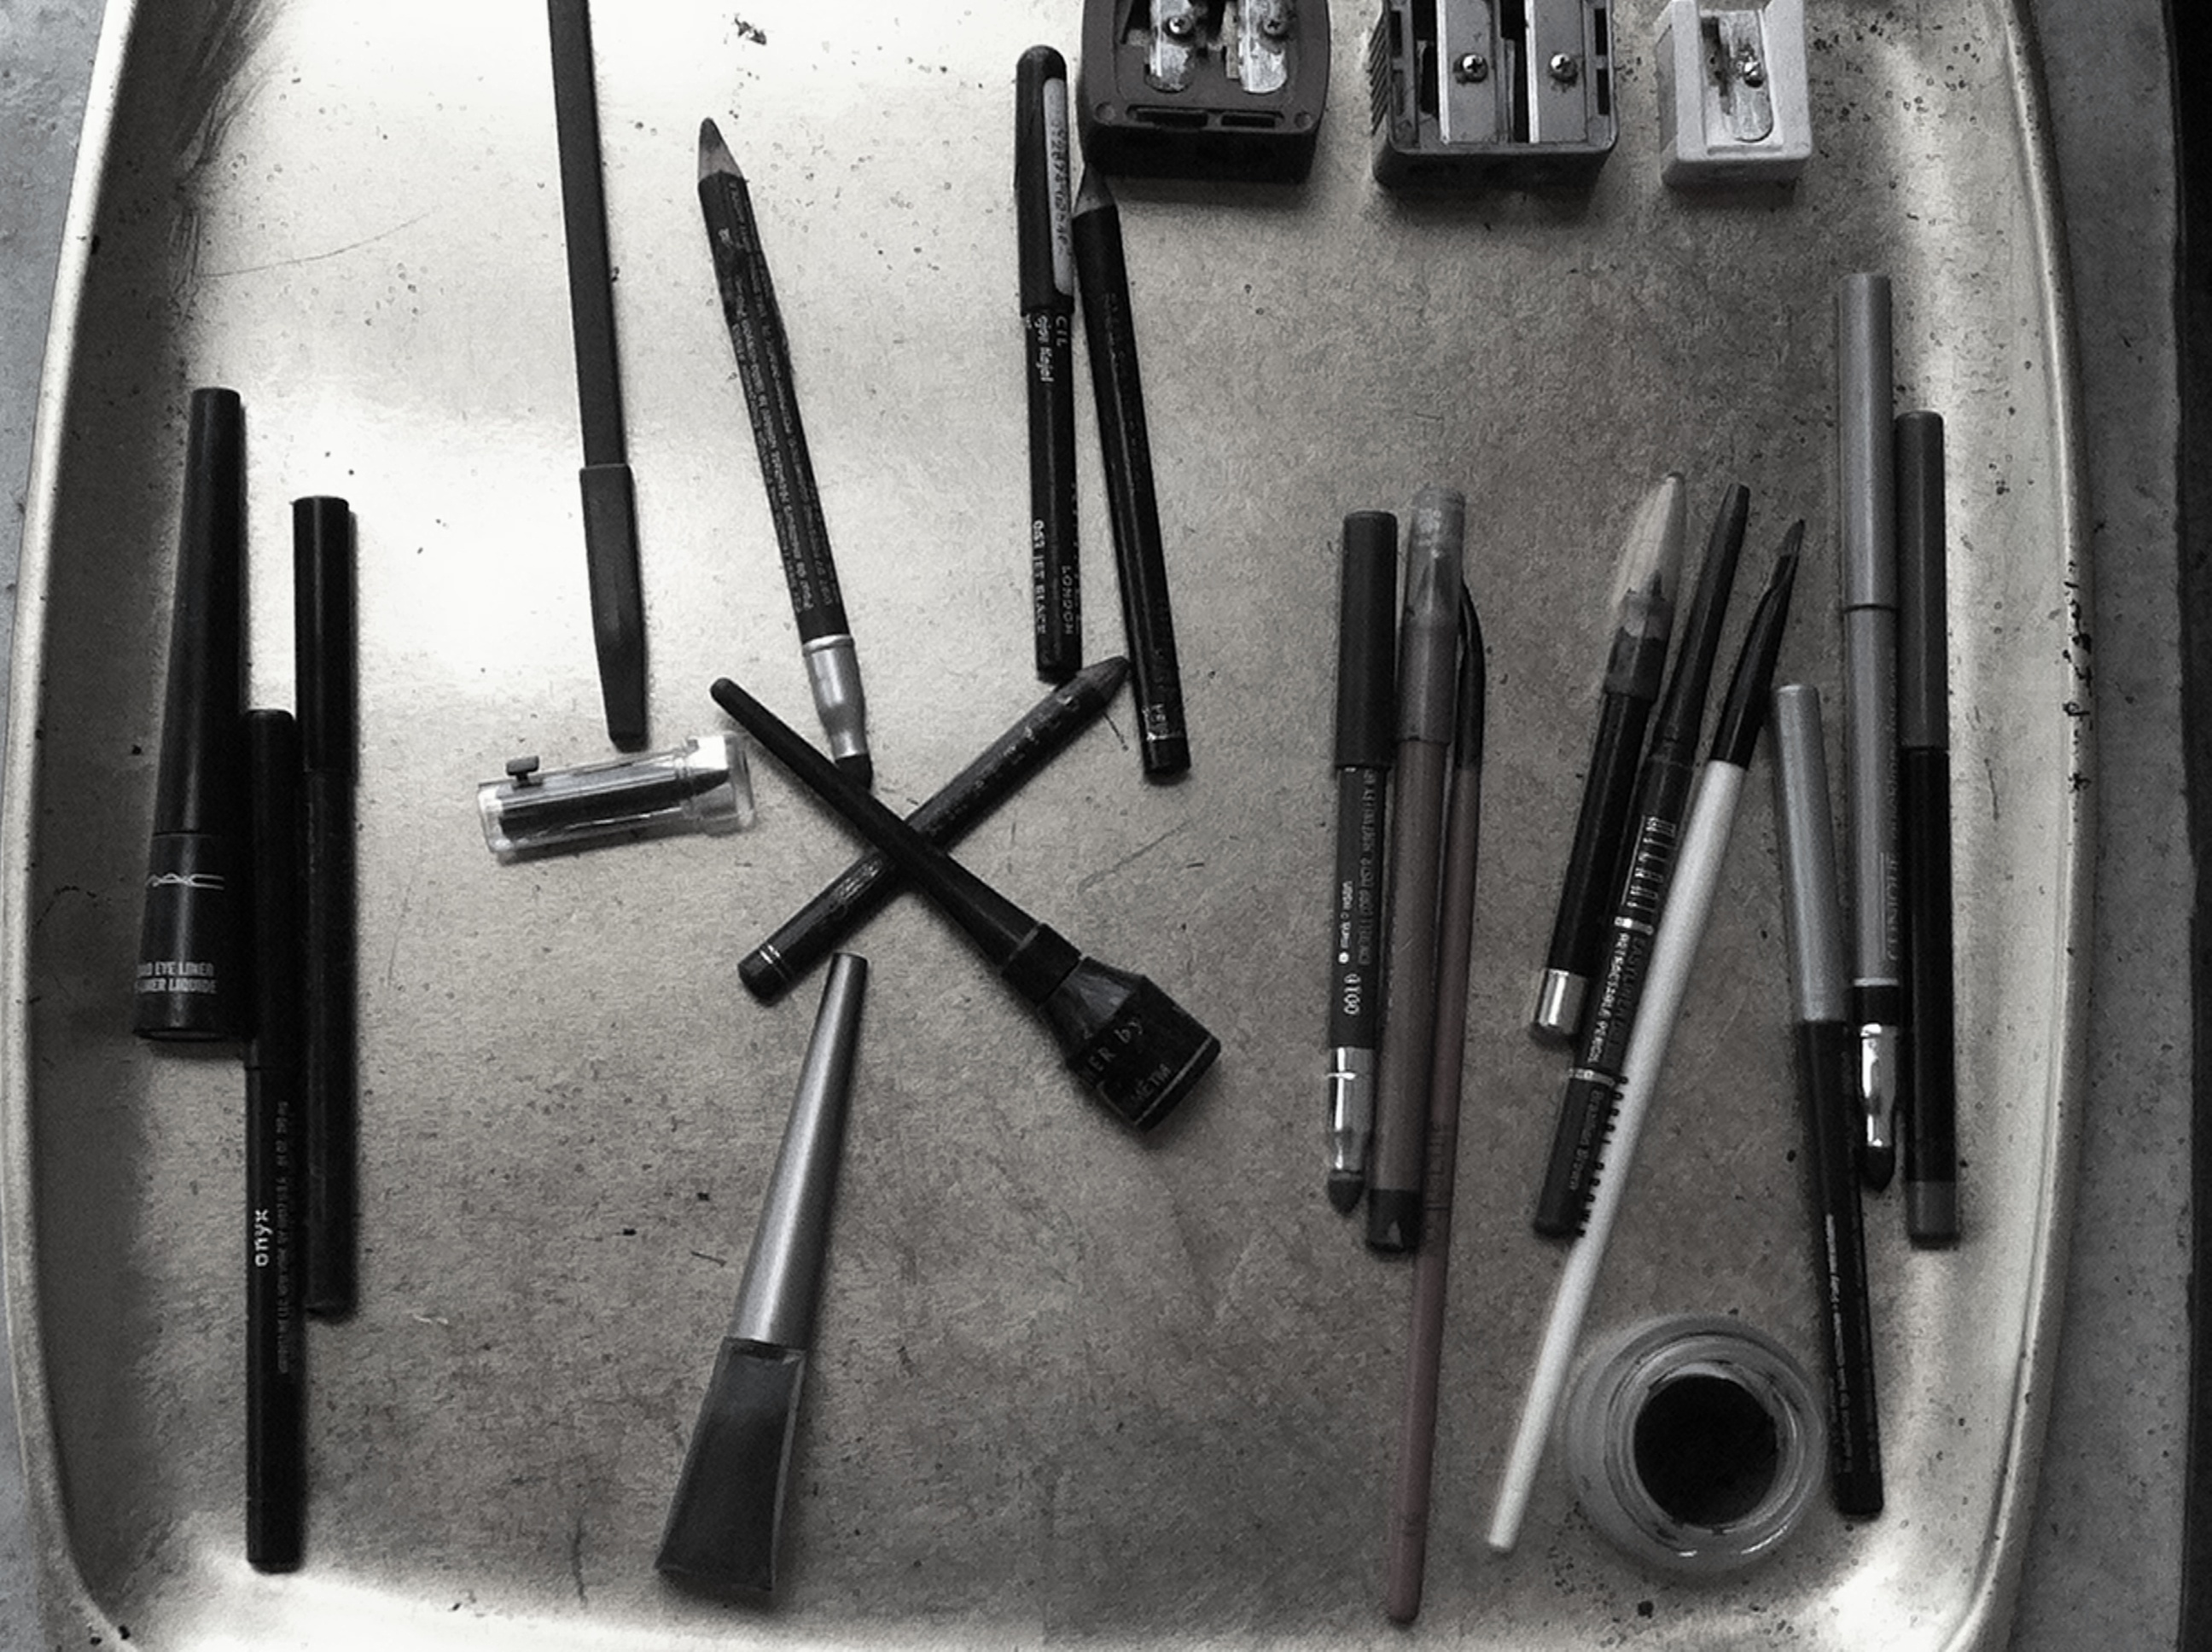 Jill's collection of black eyeliners including pencils, creams, gels, and liquids